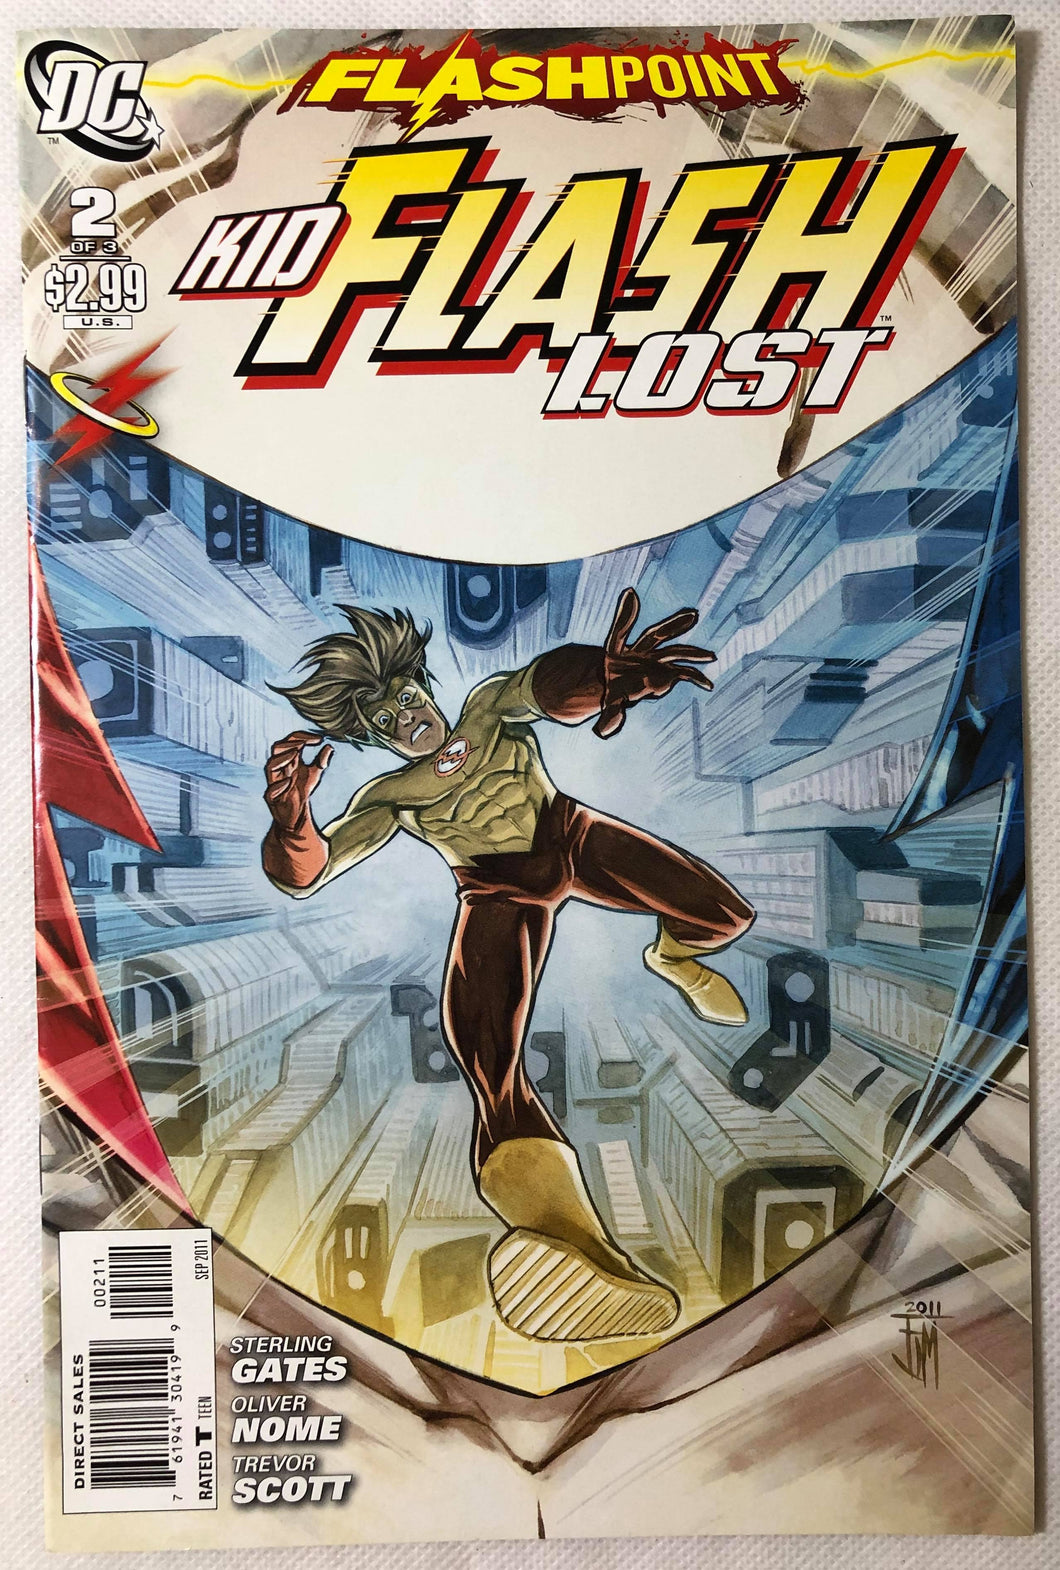 Kid Flash Lost #2 of 3 Flashpoint - Demize Collectibles LTD